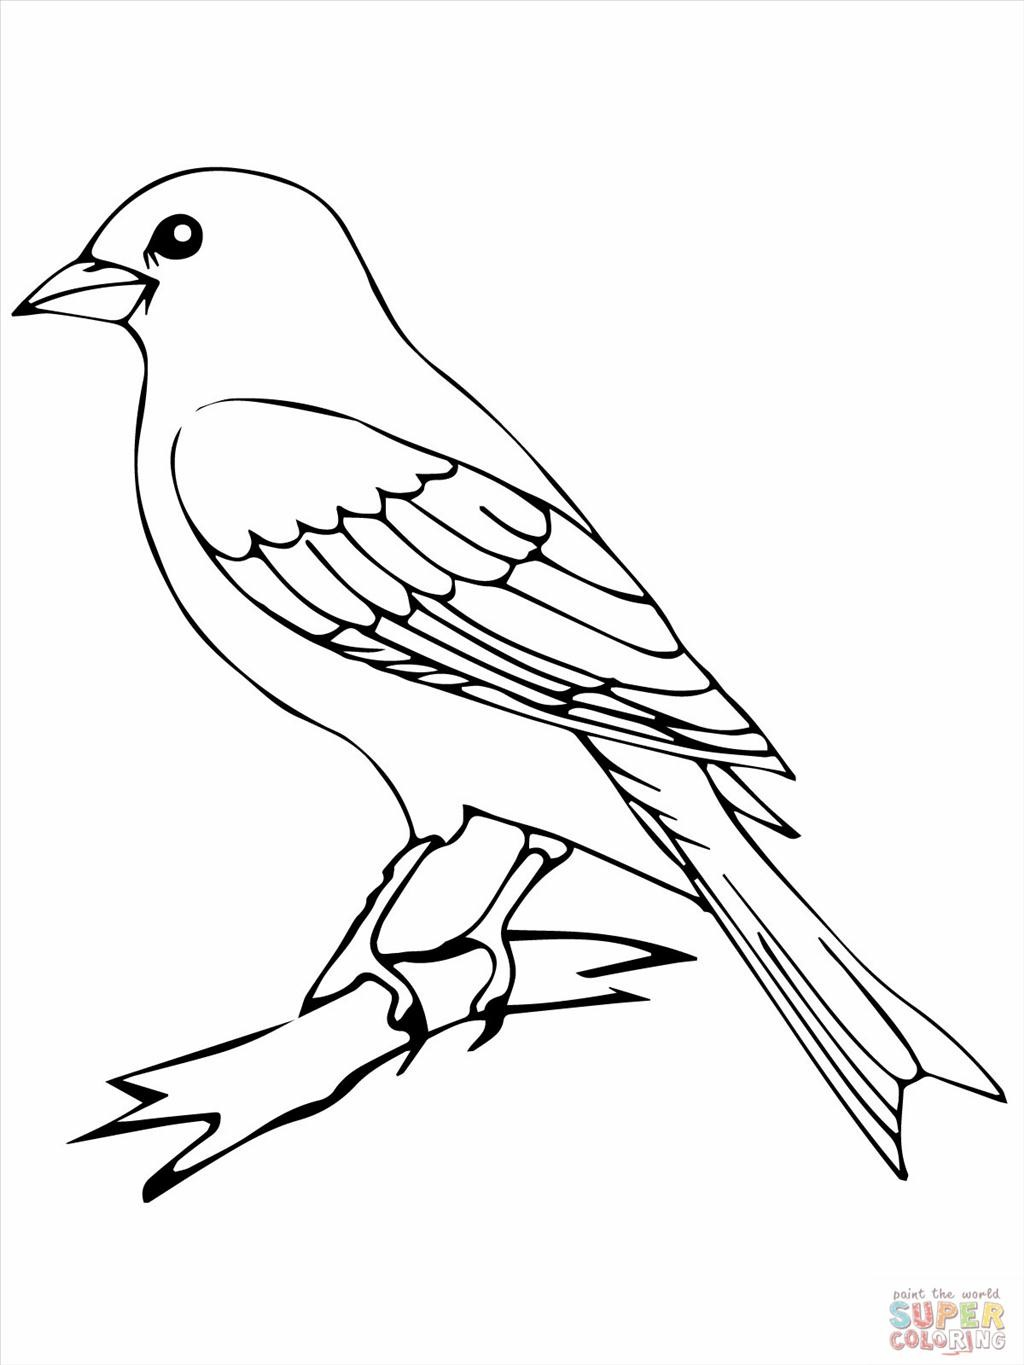 bird outlines bird outline drawing at getdrawings free download outlines bird